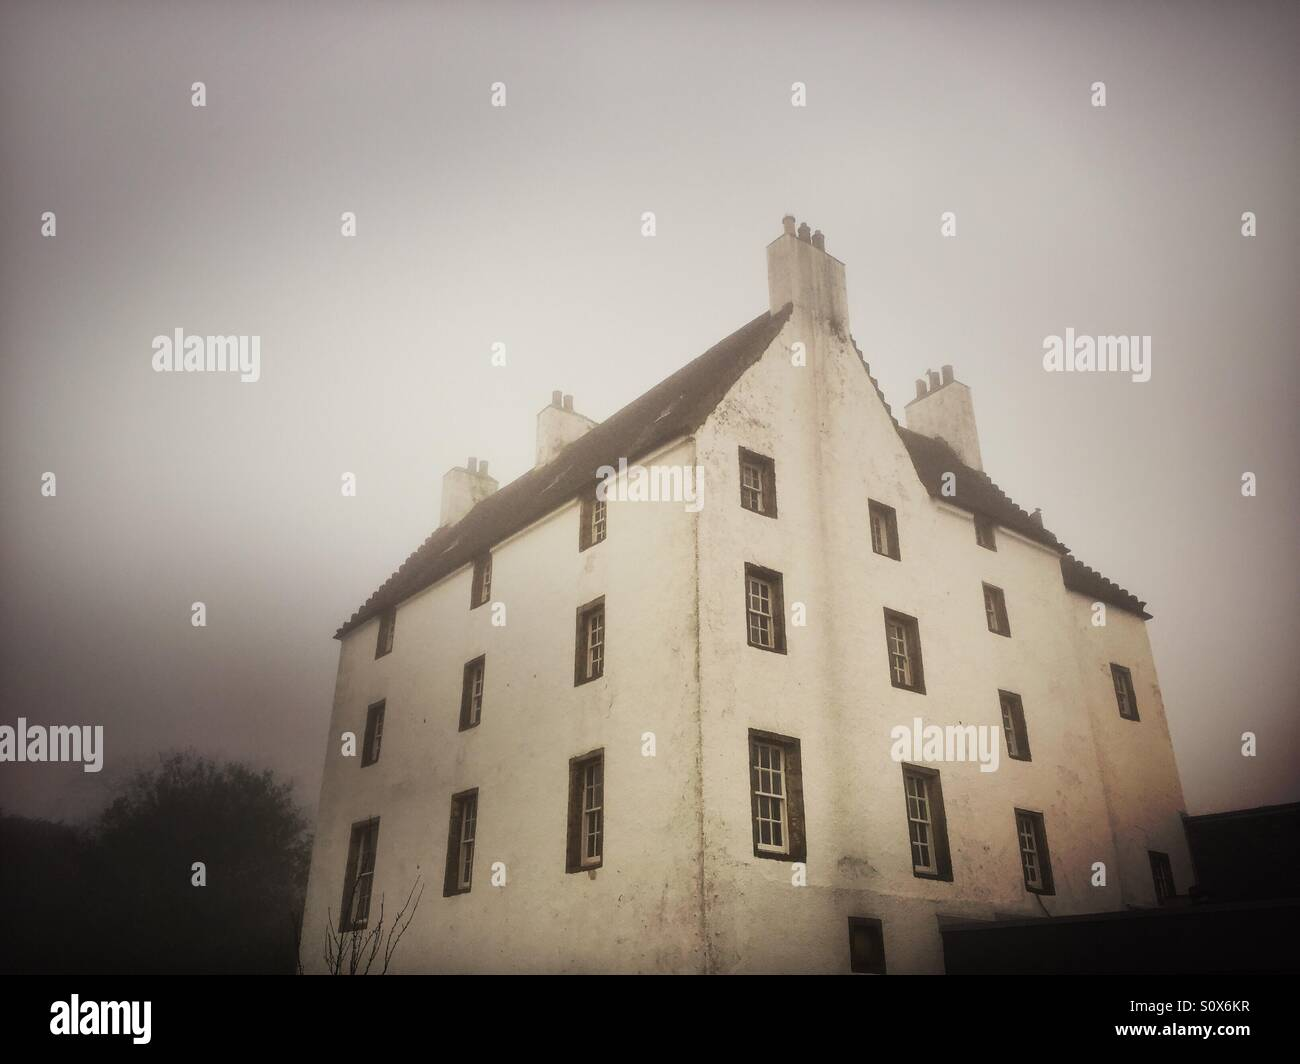 A large house is seen in the mist in Upphall, near Edinburg in Scotland. - Stock Image